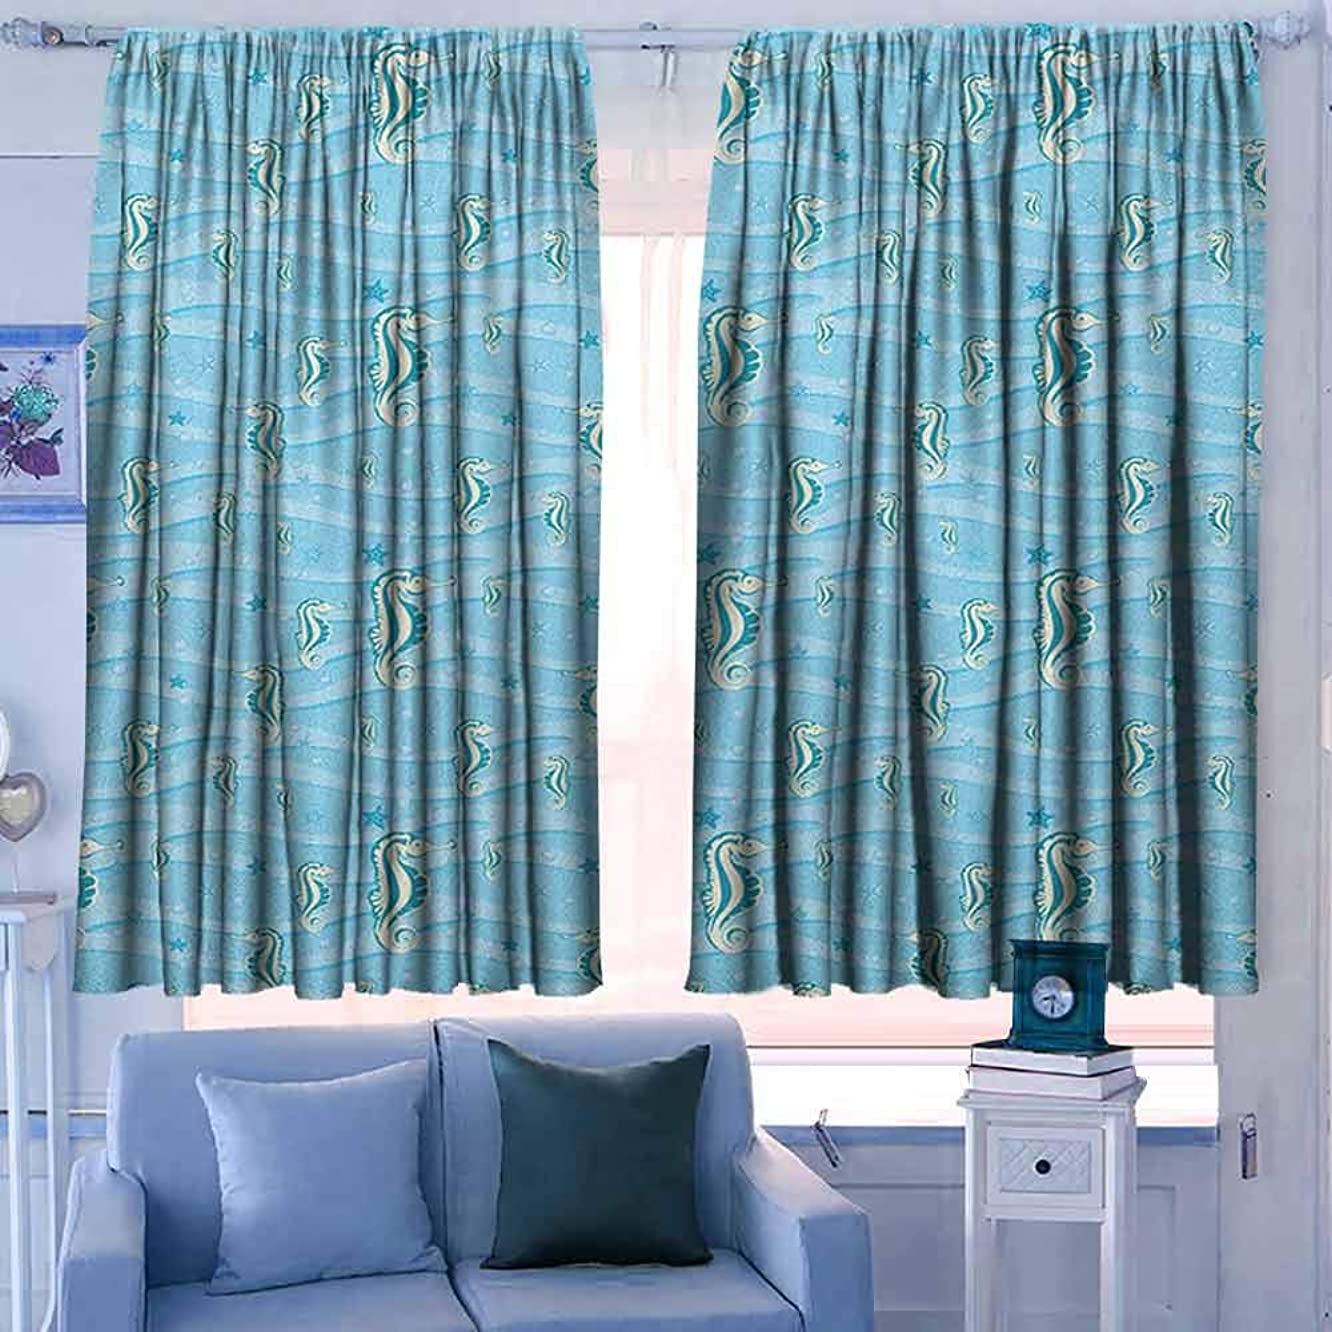 Home Decoration Thermal Insulated Curtains 55